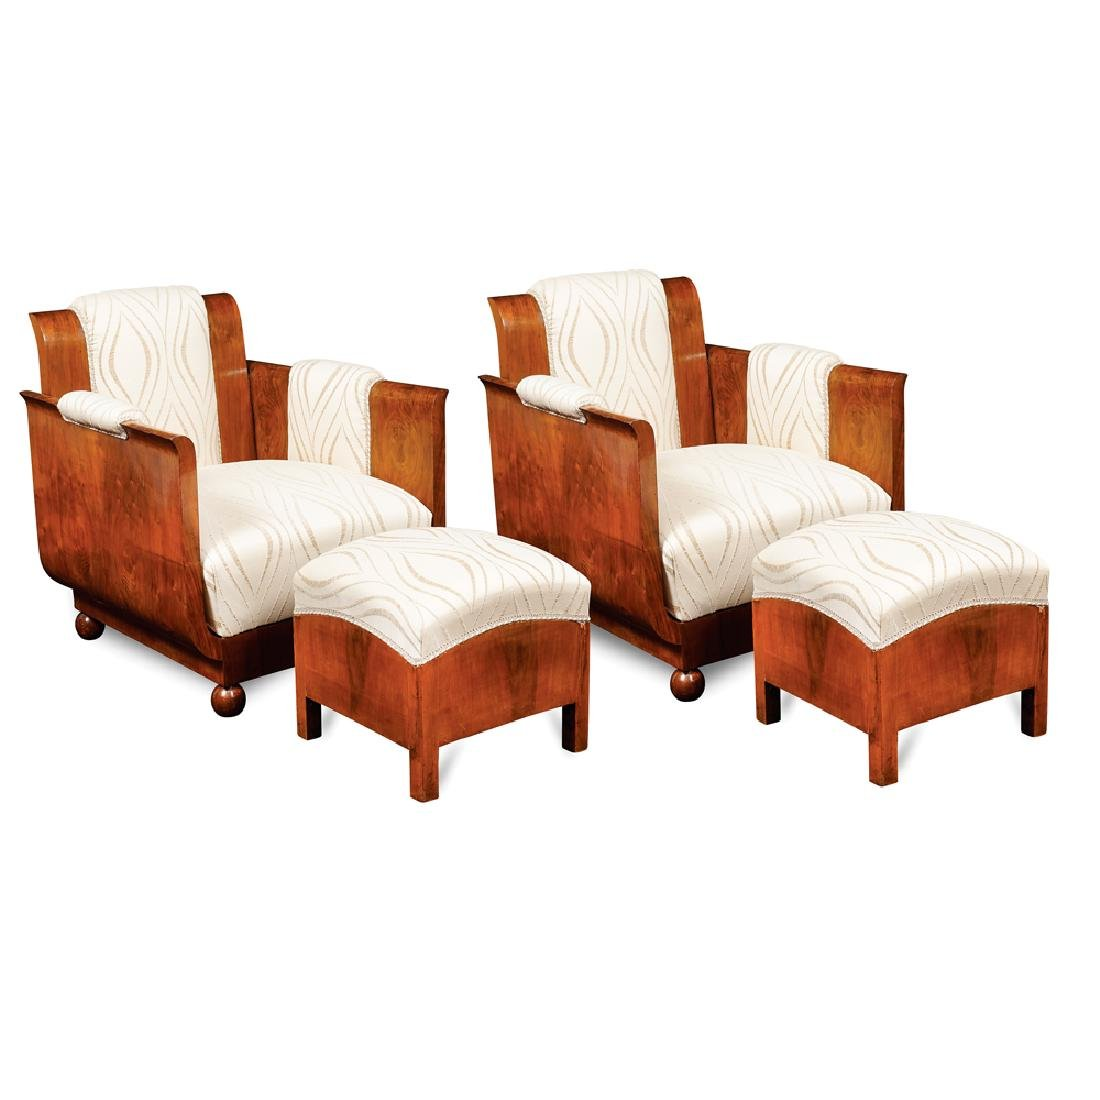 A pair of Decò armchairs and footstools France early